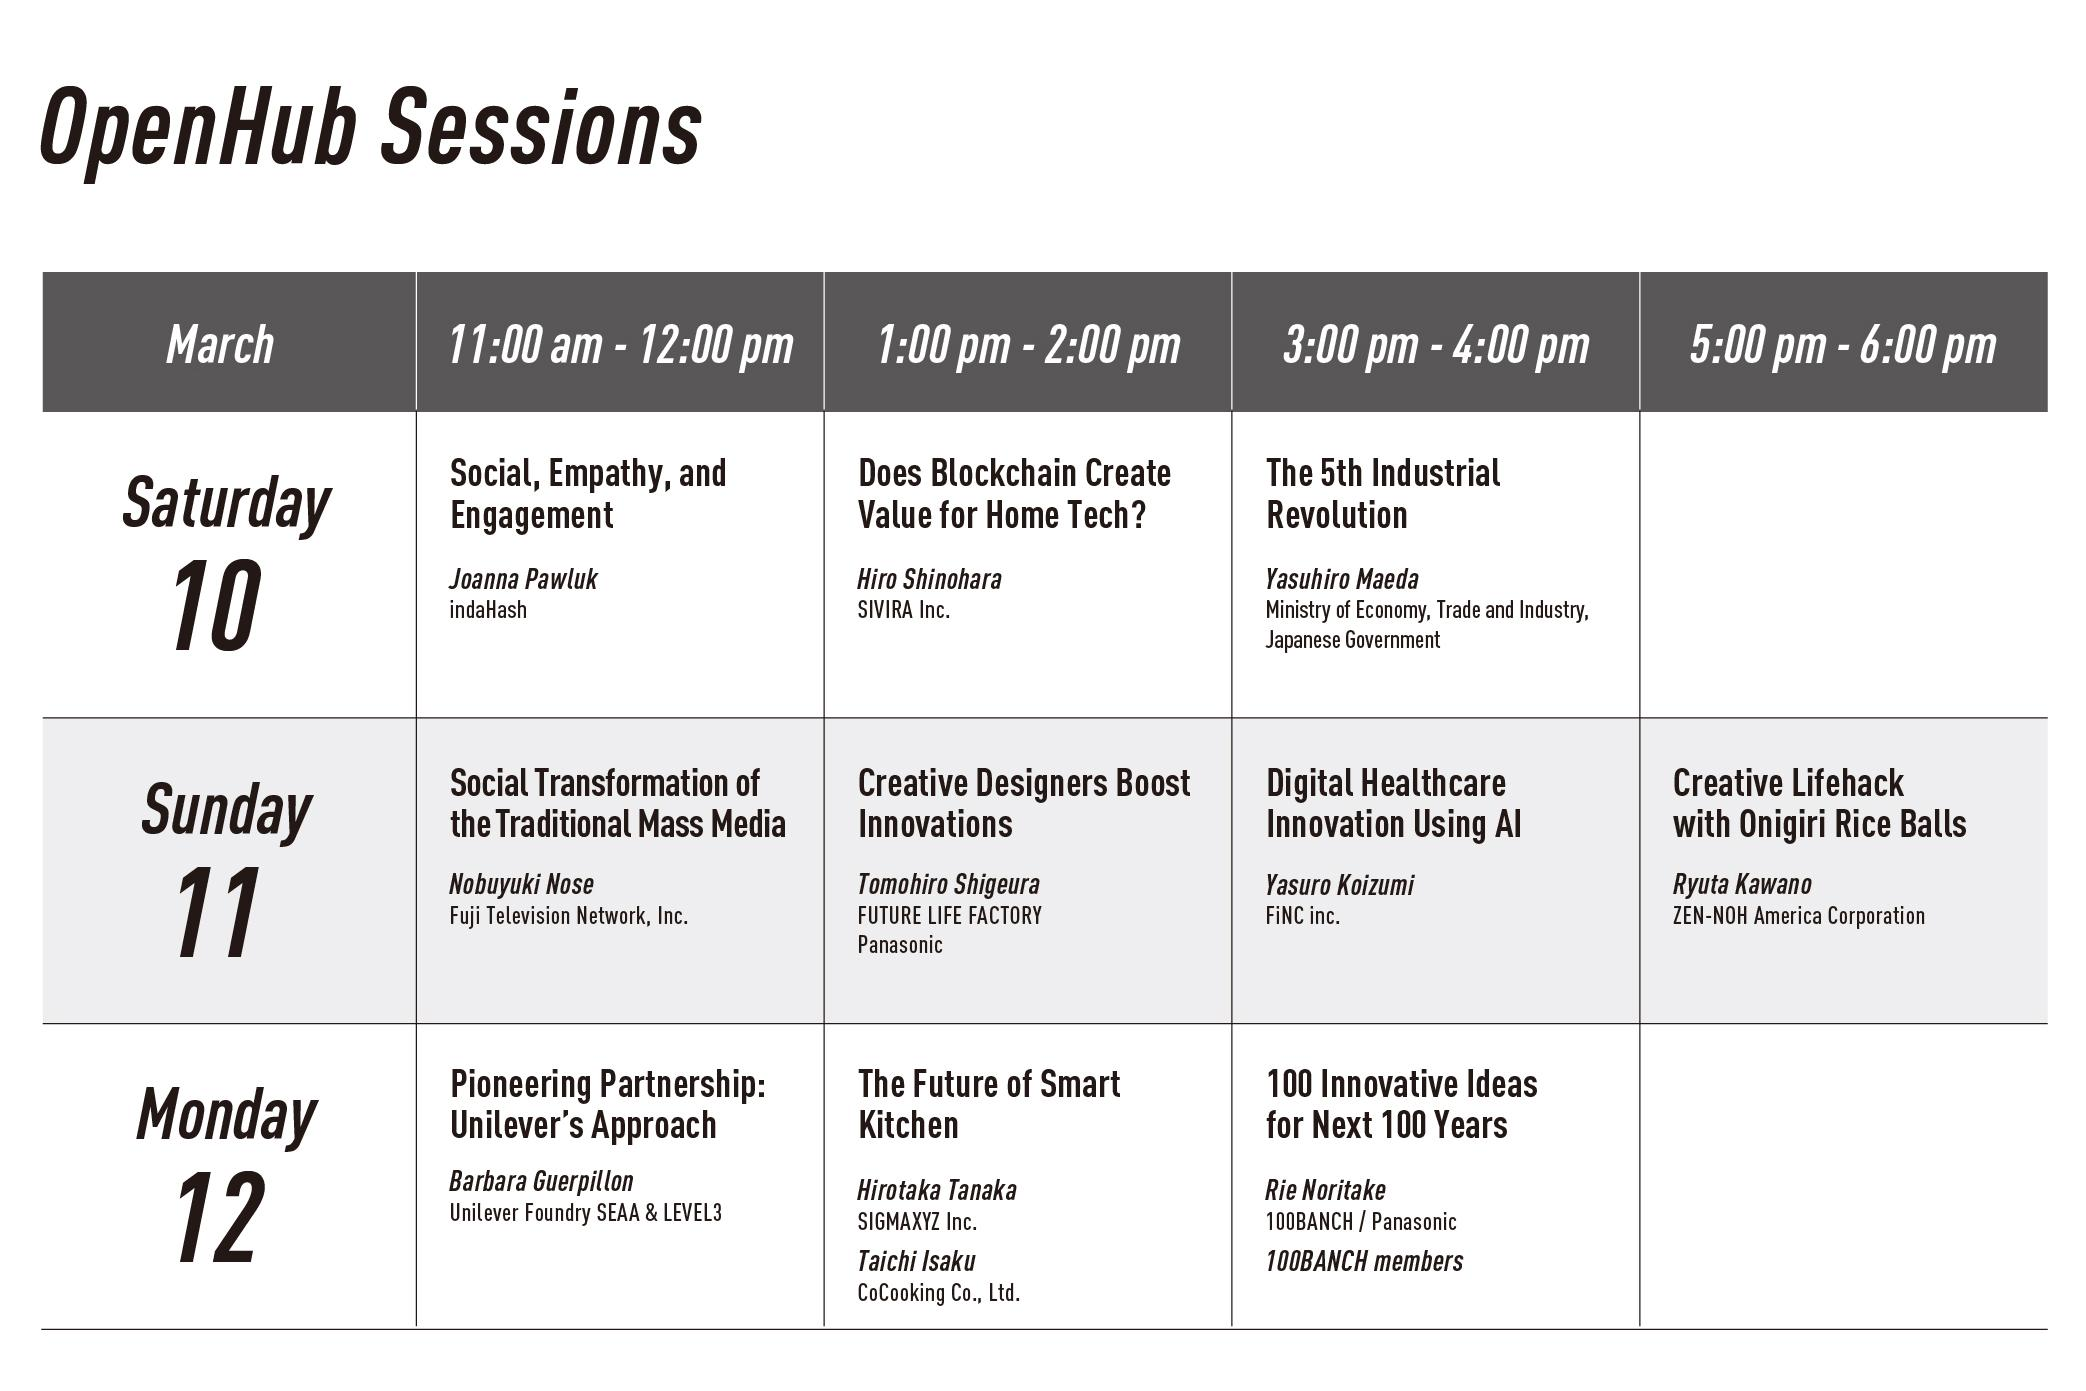 table: openHub sessions schedule at sxsw2018